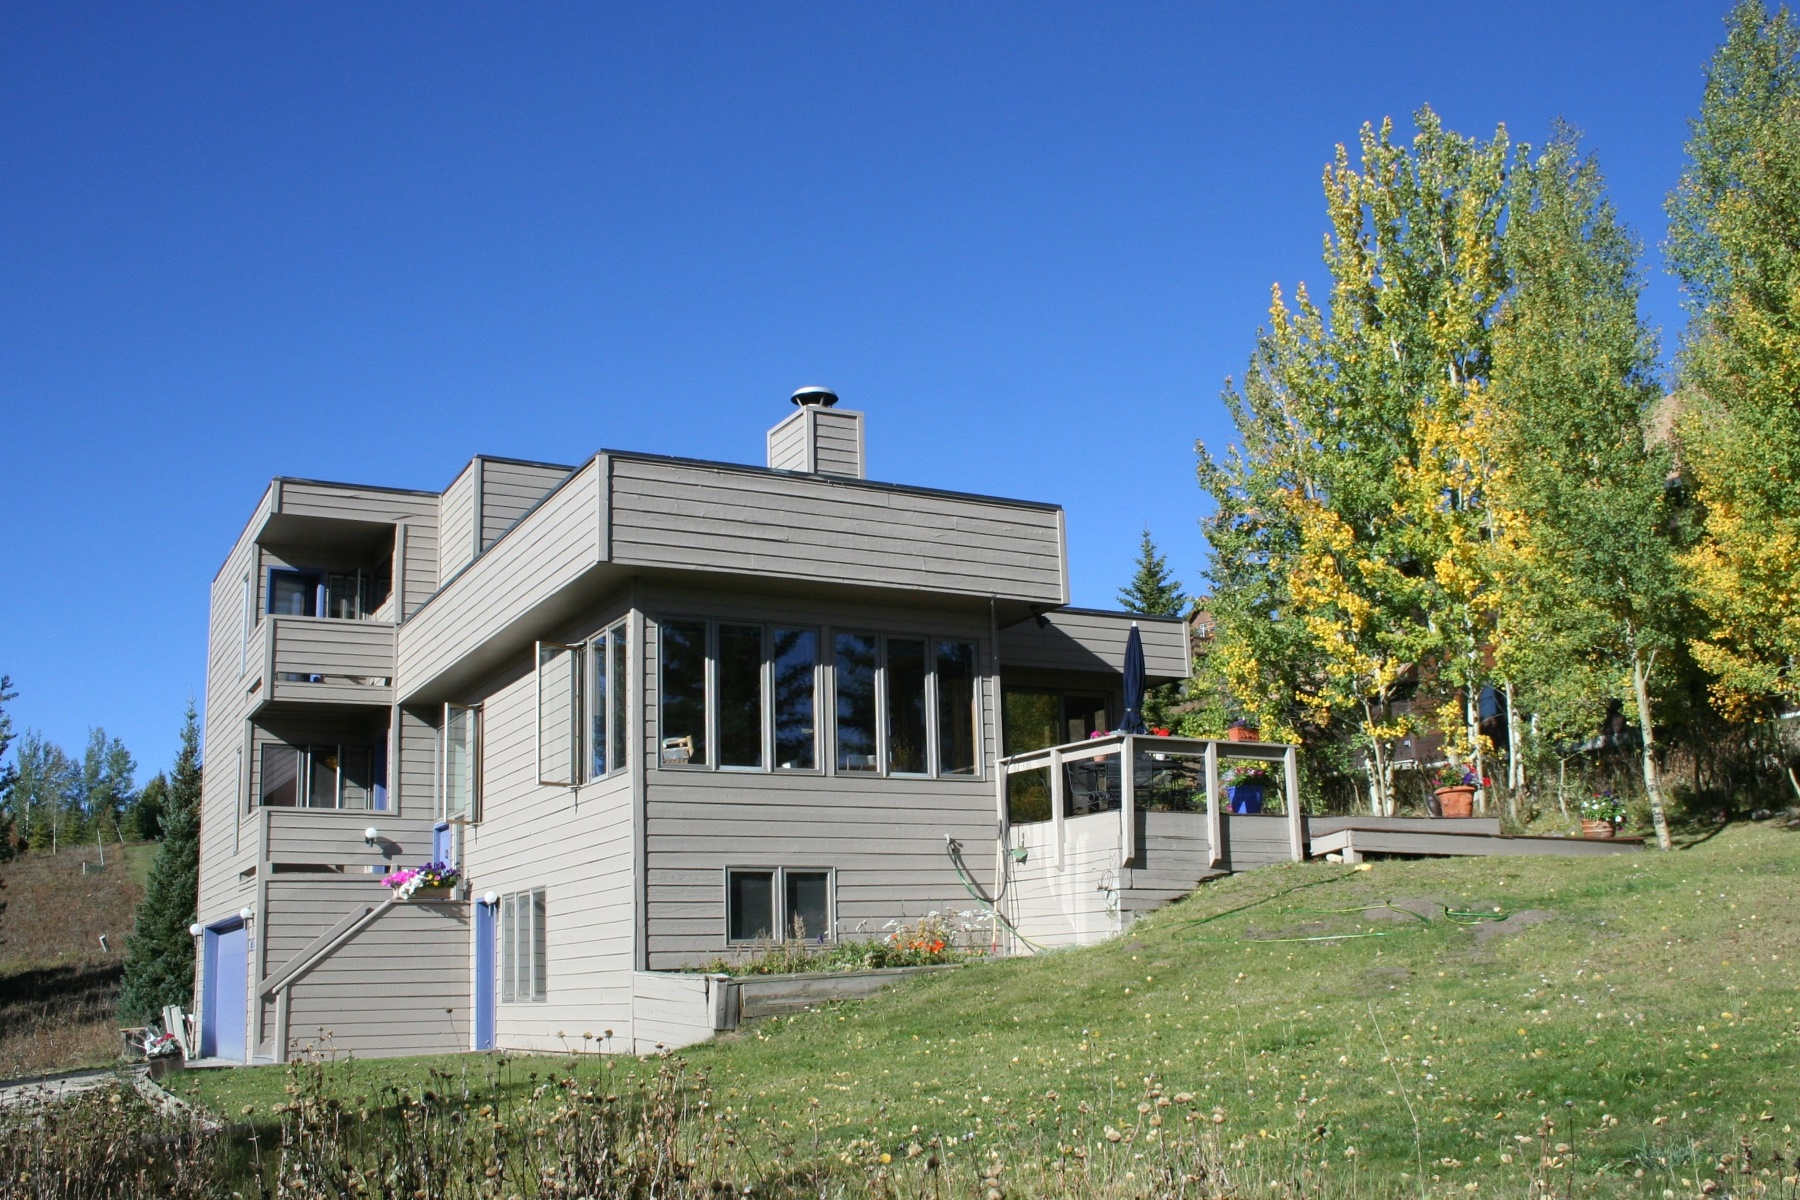 Single Family Homes for Sale at Contemporary Home on Elevated Lot 24 Whetstone Road Mount Crested Butte, Colorado 81225 United States